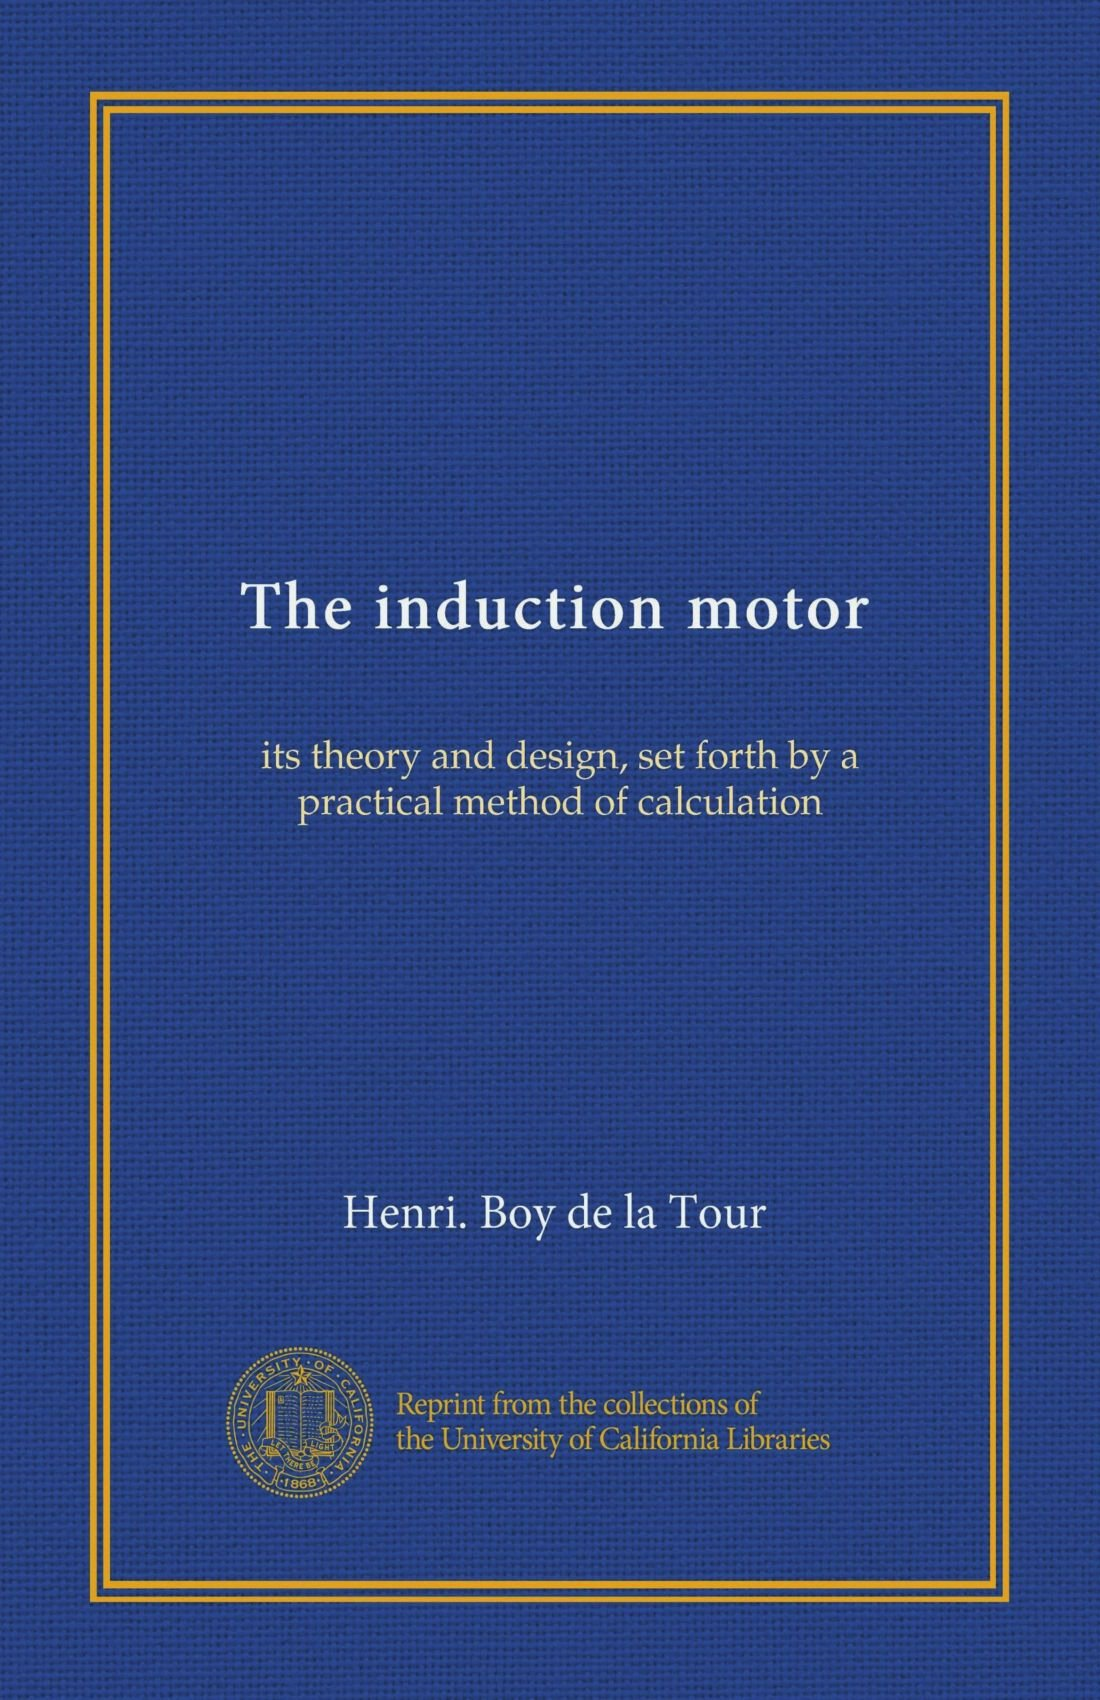 Download The induction motor (Vol-1): its theory and design, set forth by a practical method of calculation PDF